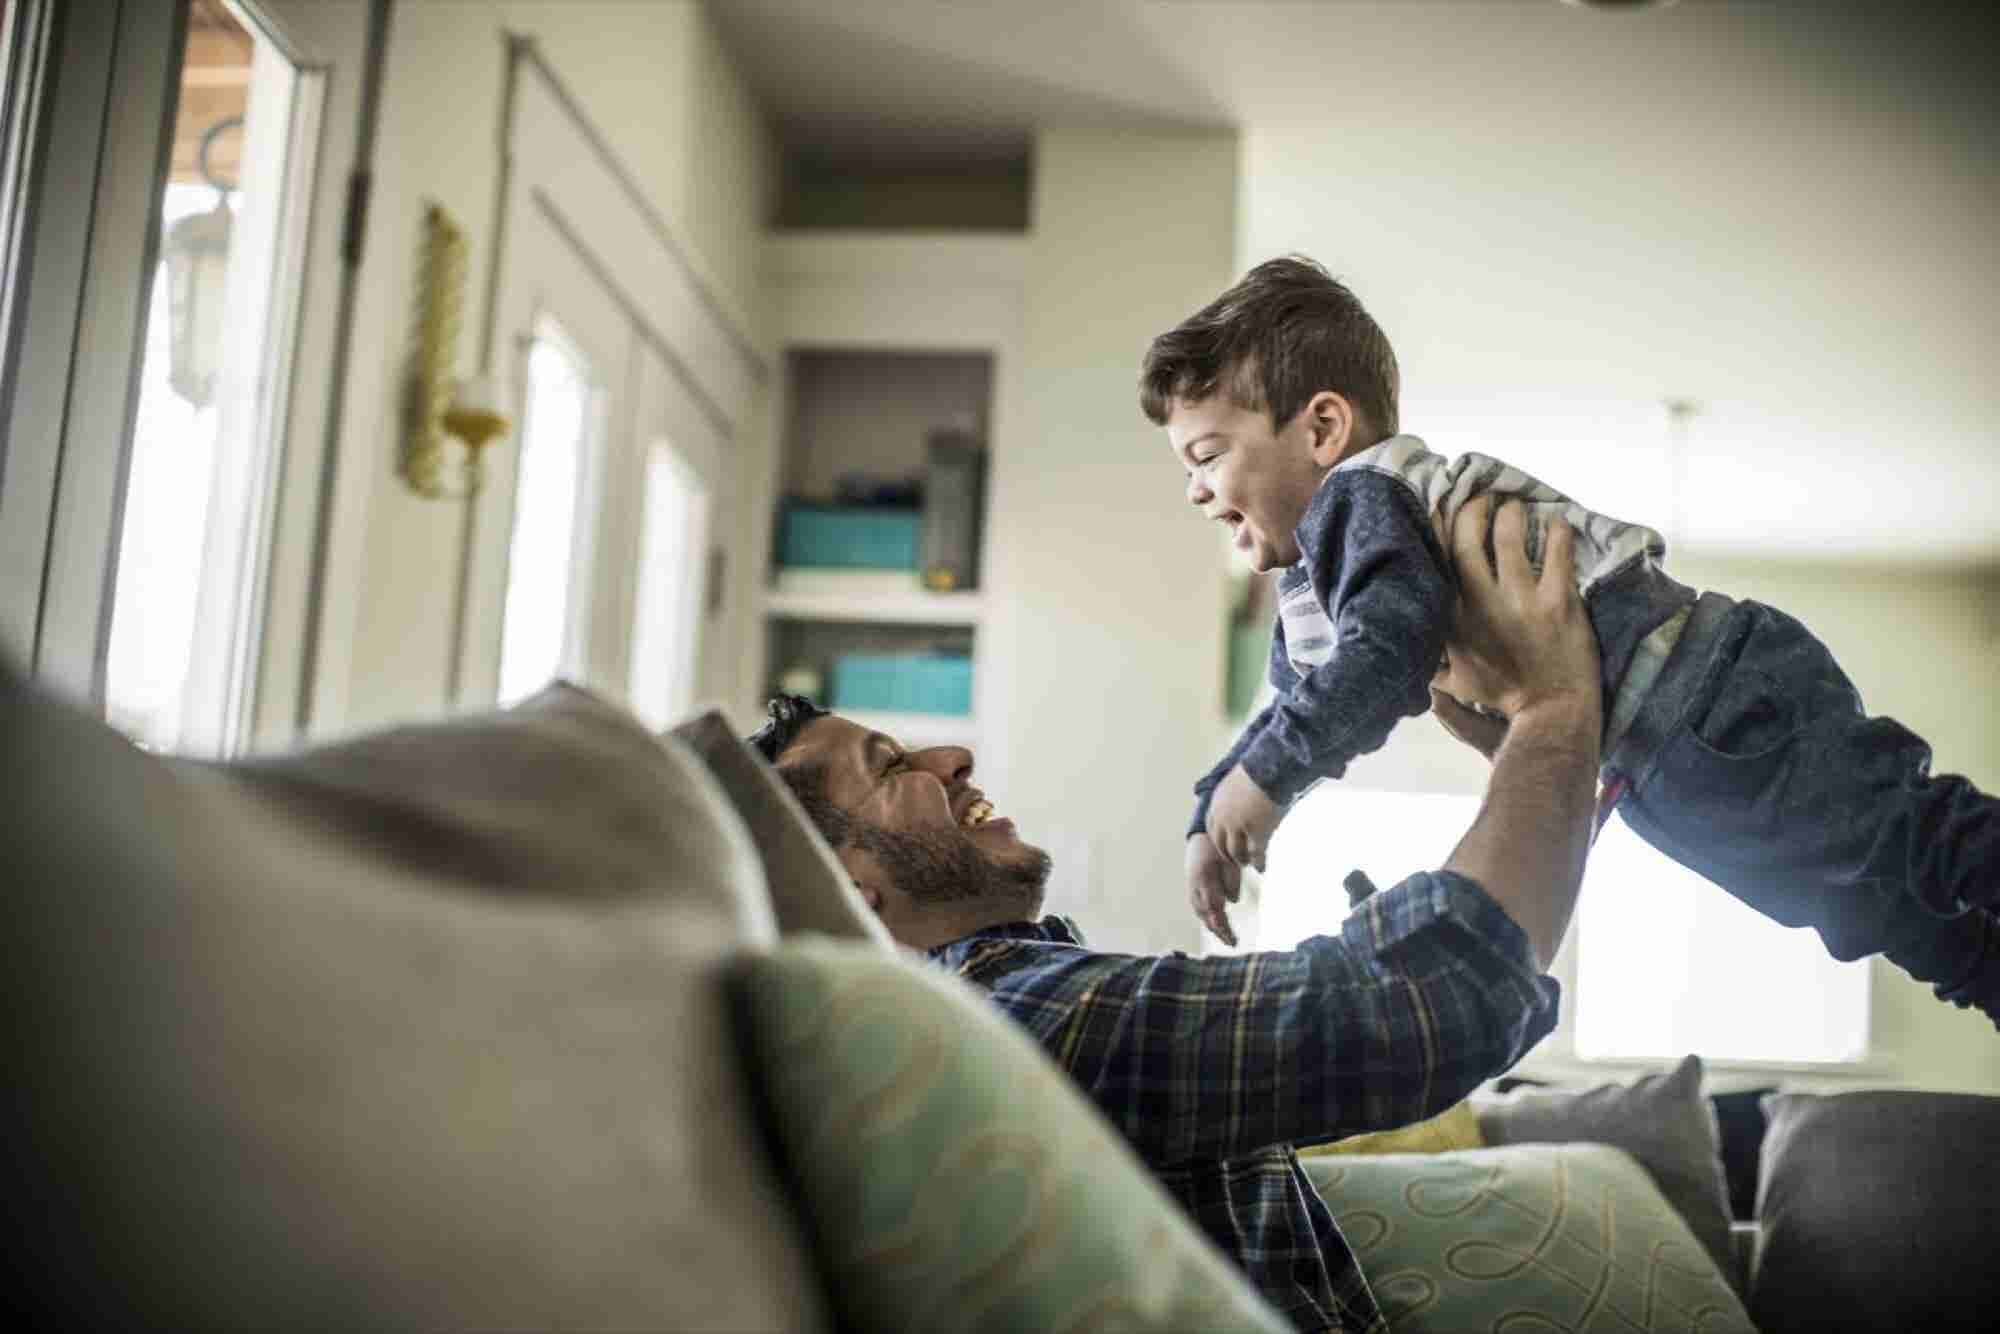 Marijuana and Parenting? Study Finds They Go Well Together.